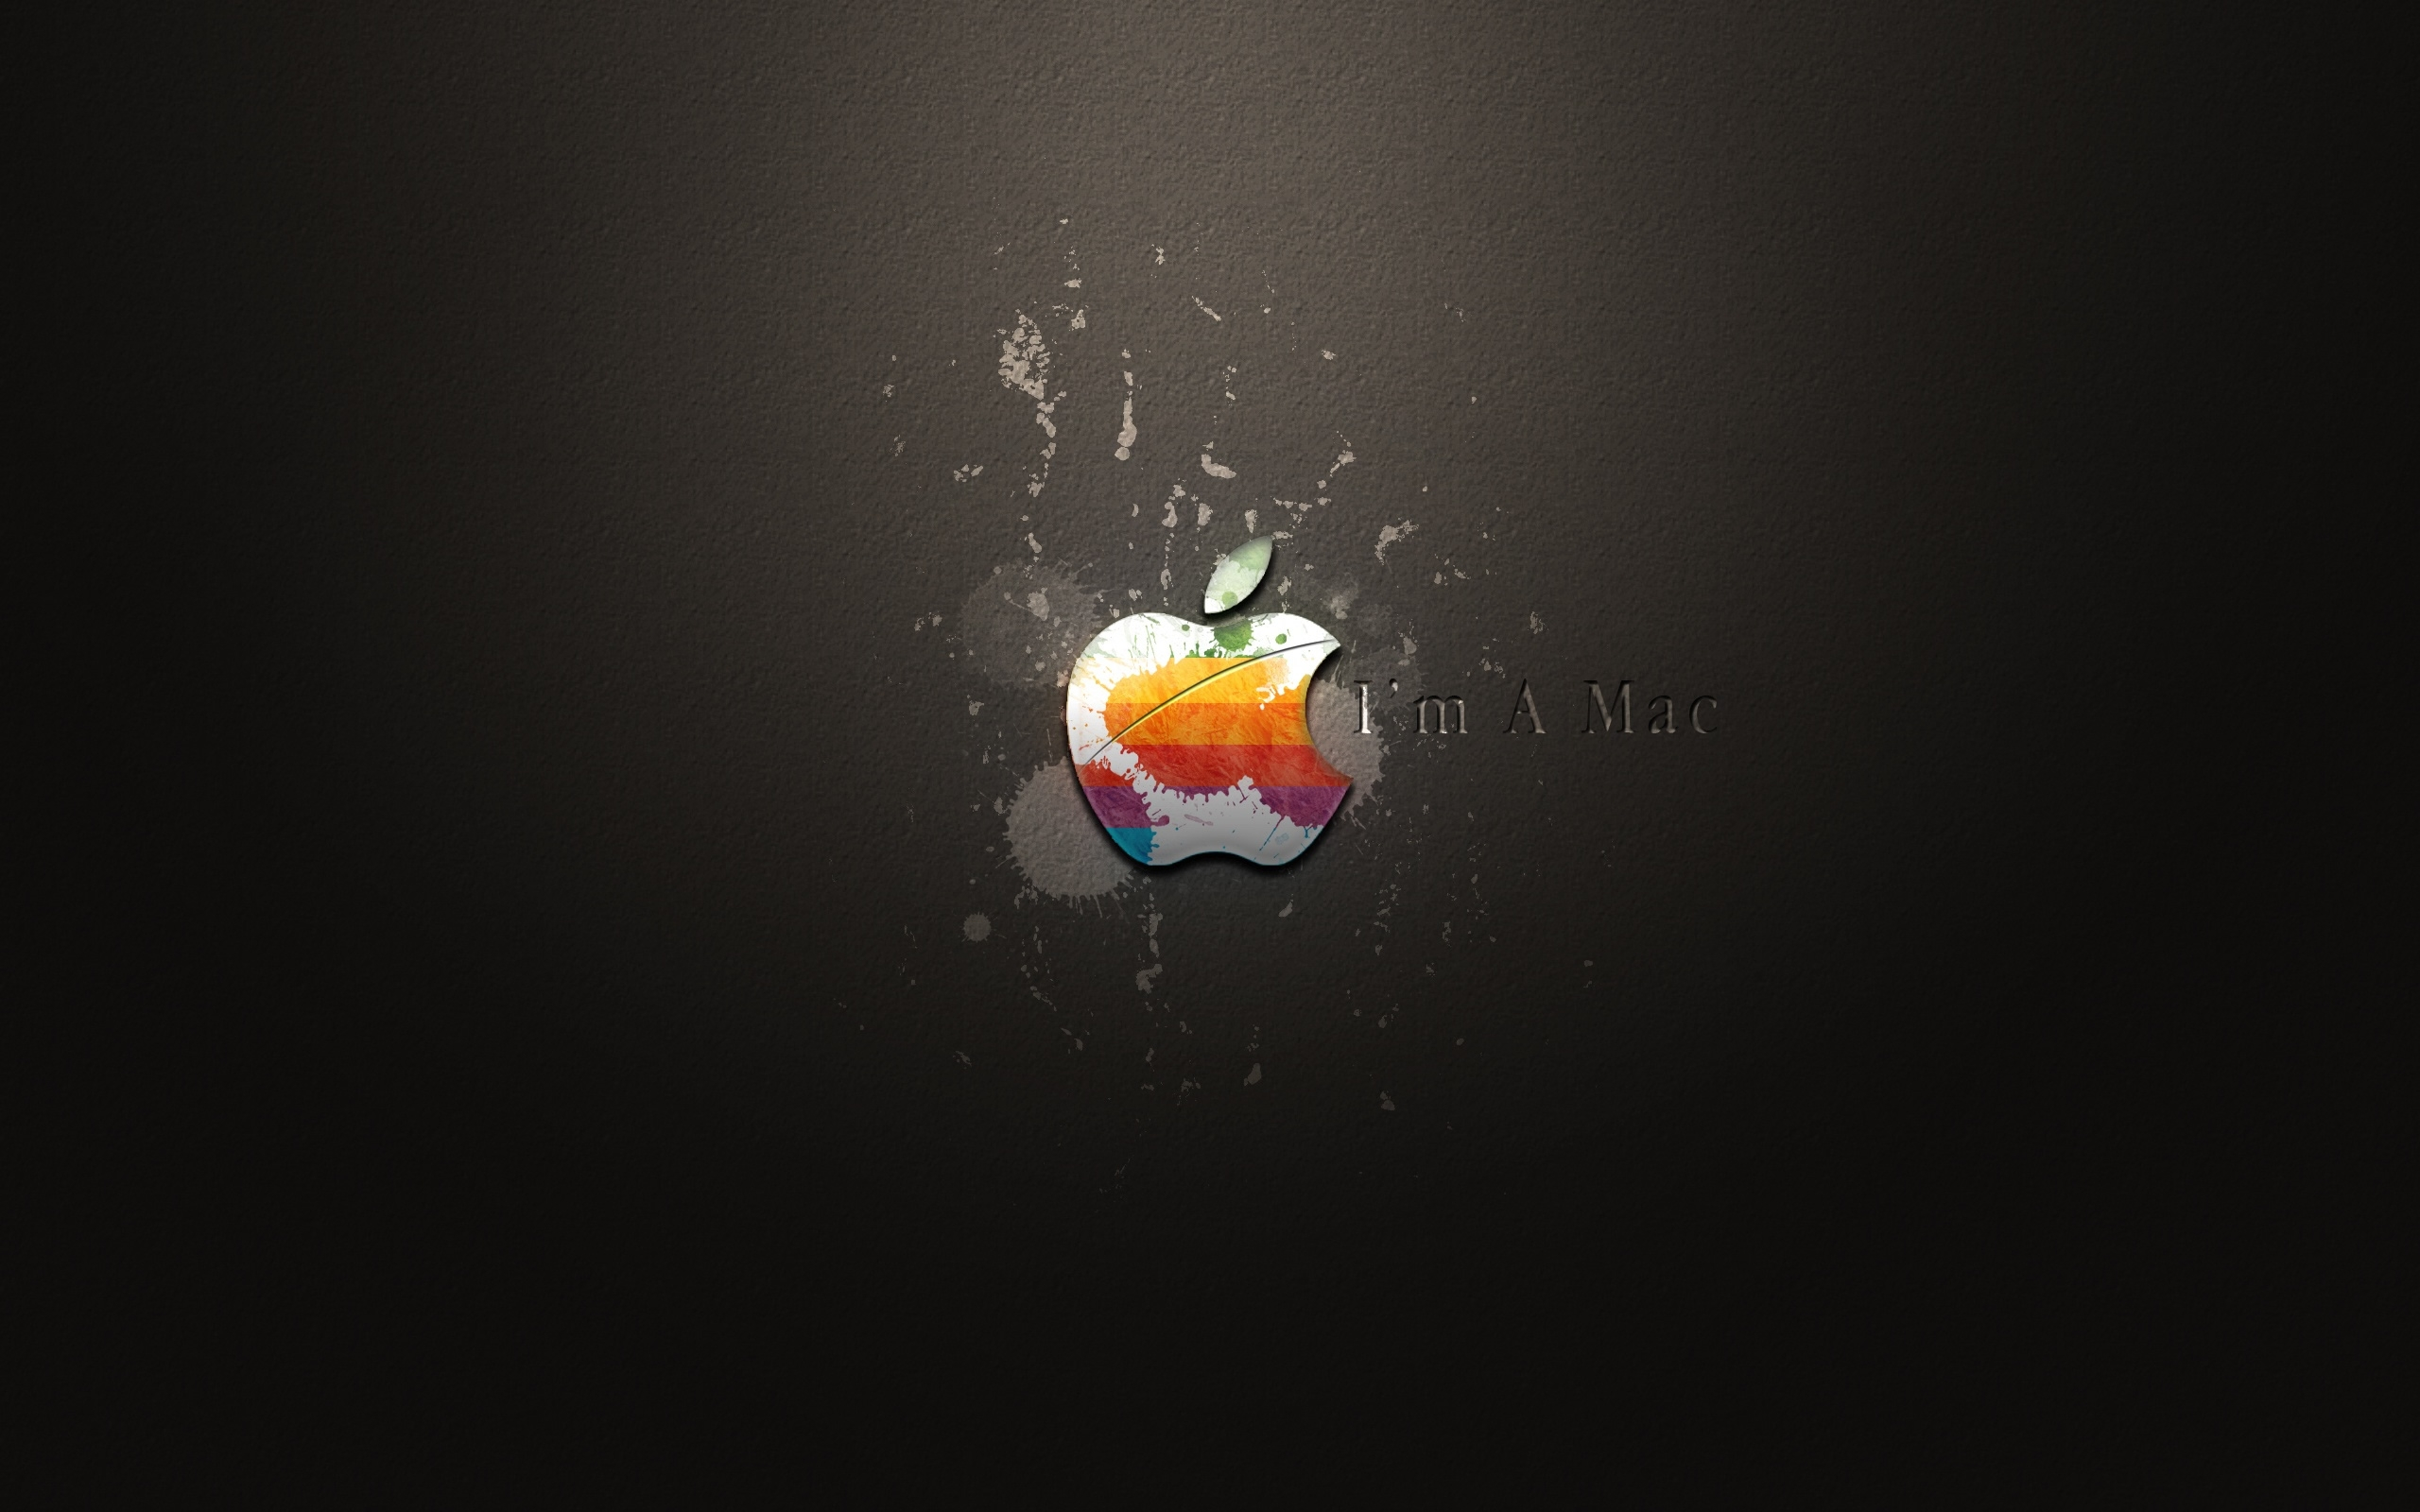 retina macbook pro wallpaper